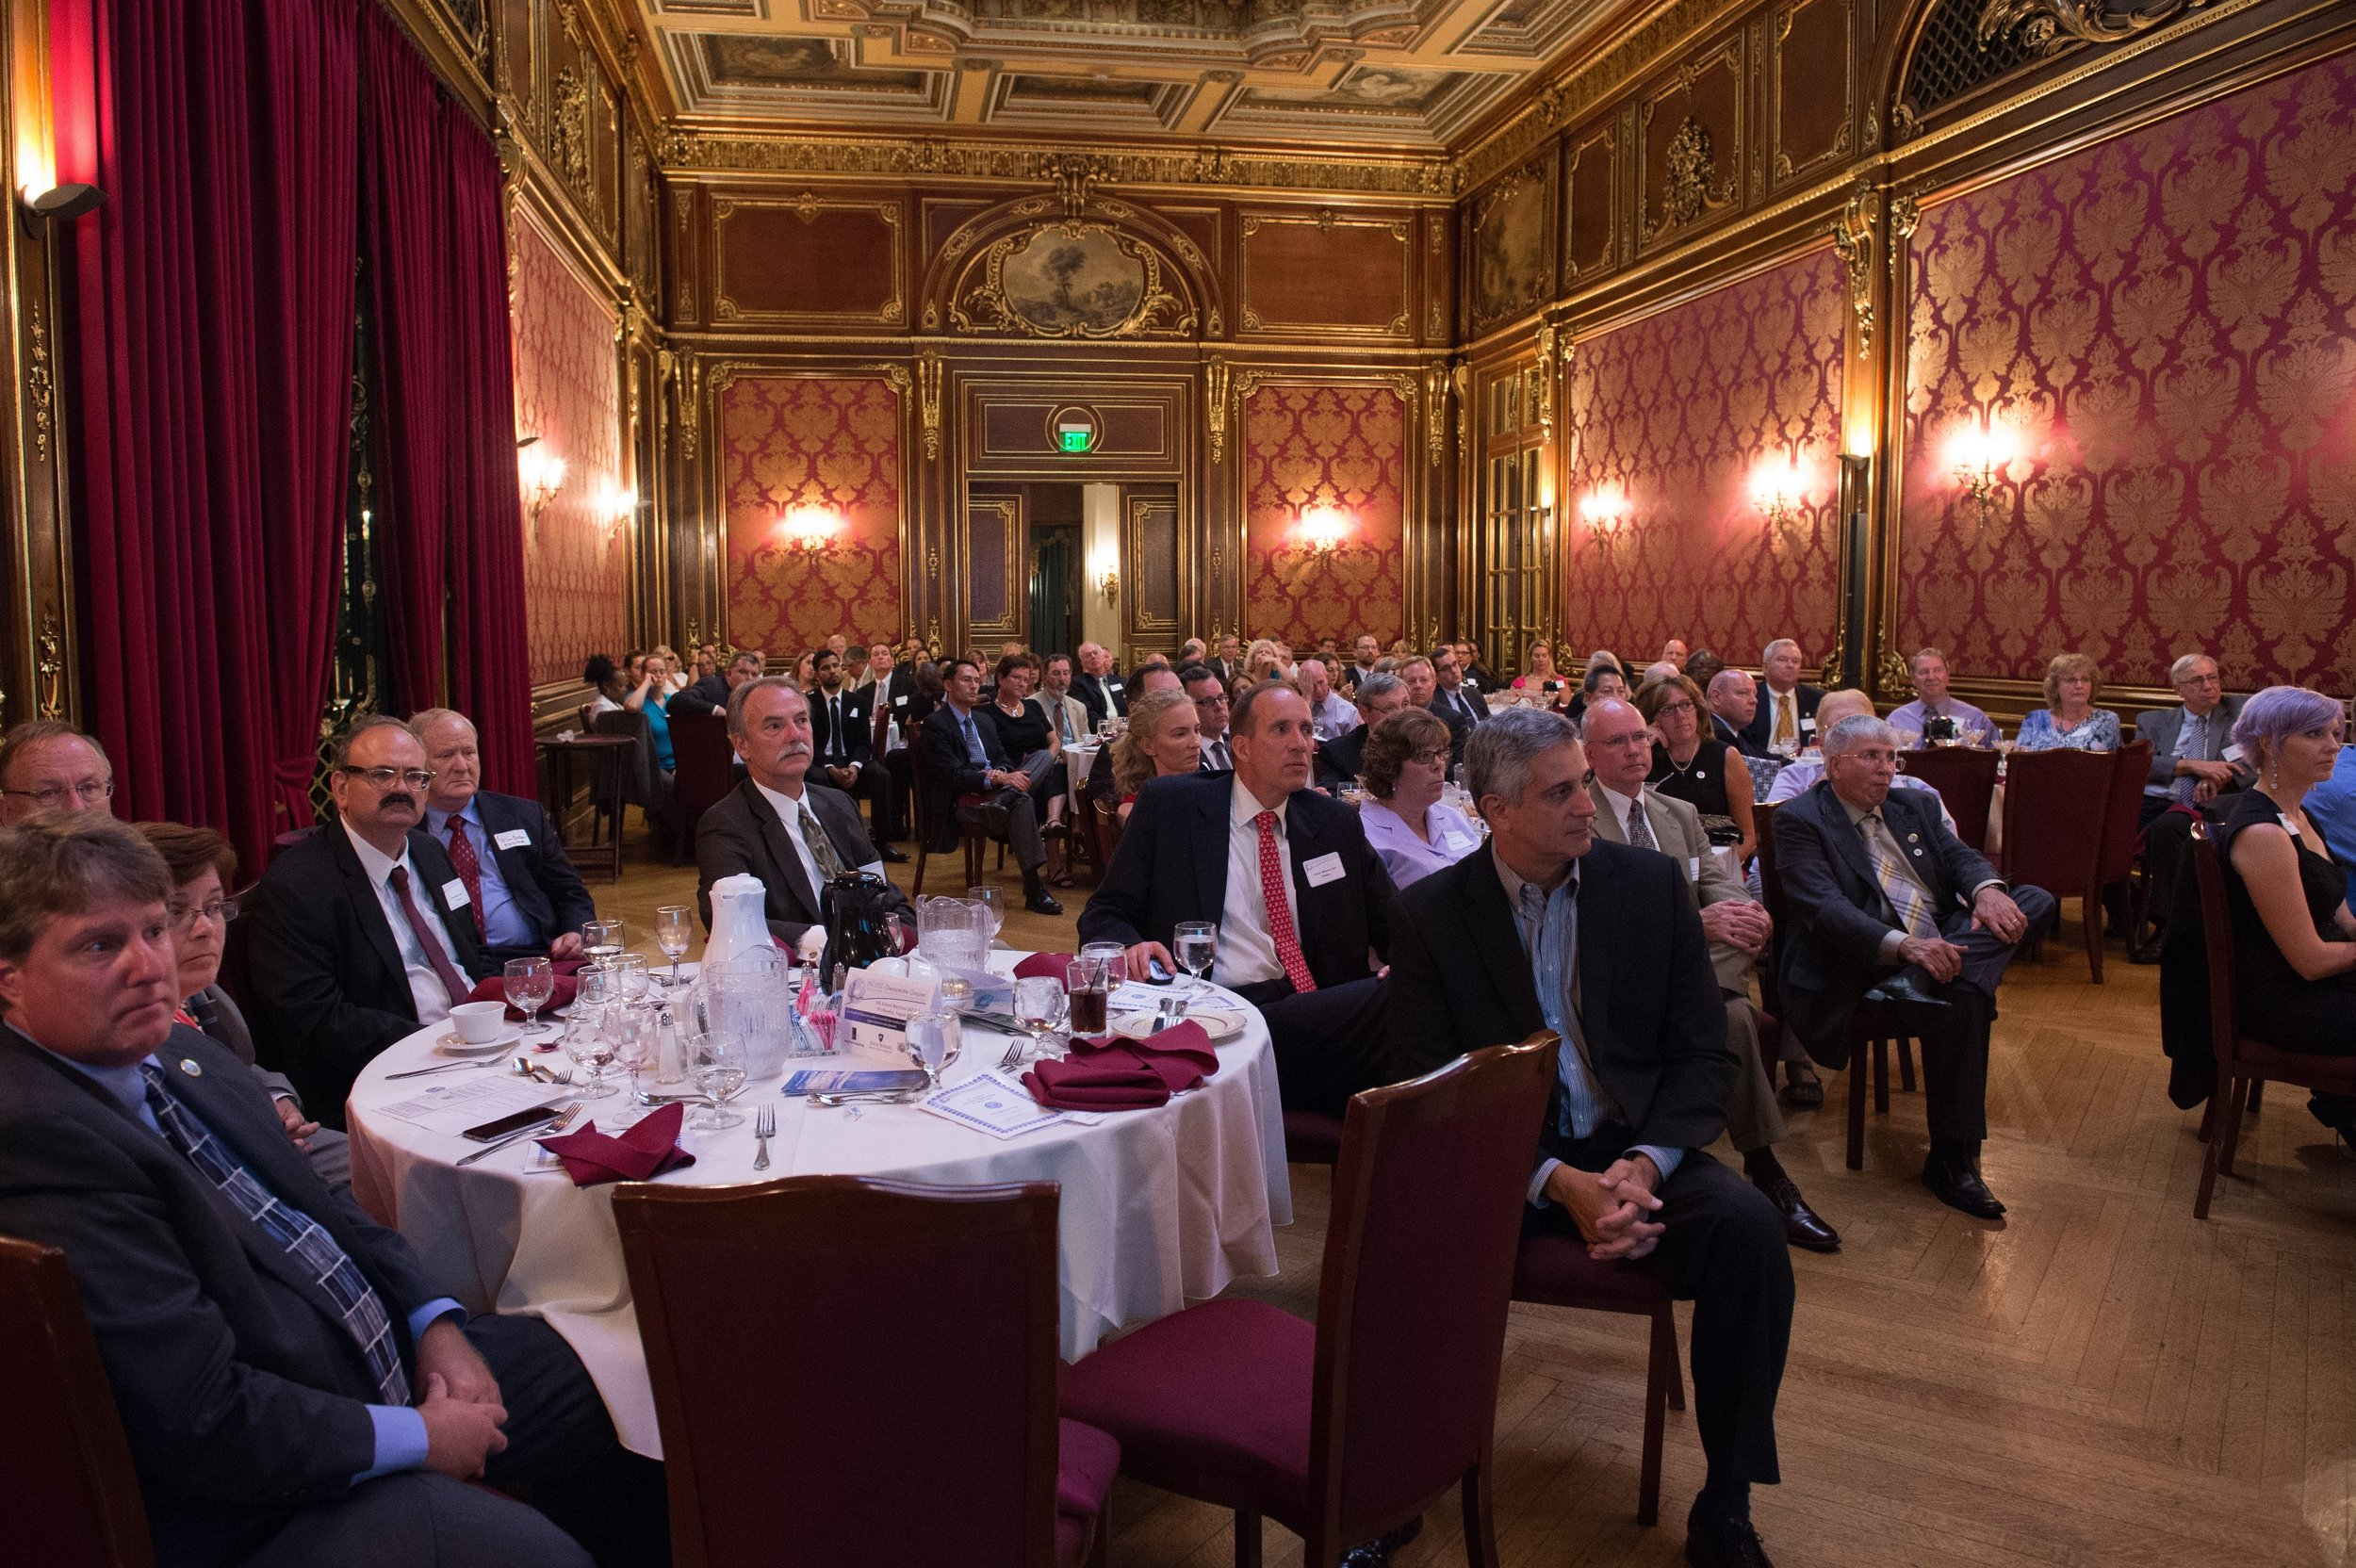 A Speaker's View of the Mansion's Ballroom Filled to Capacity